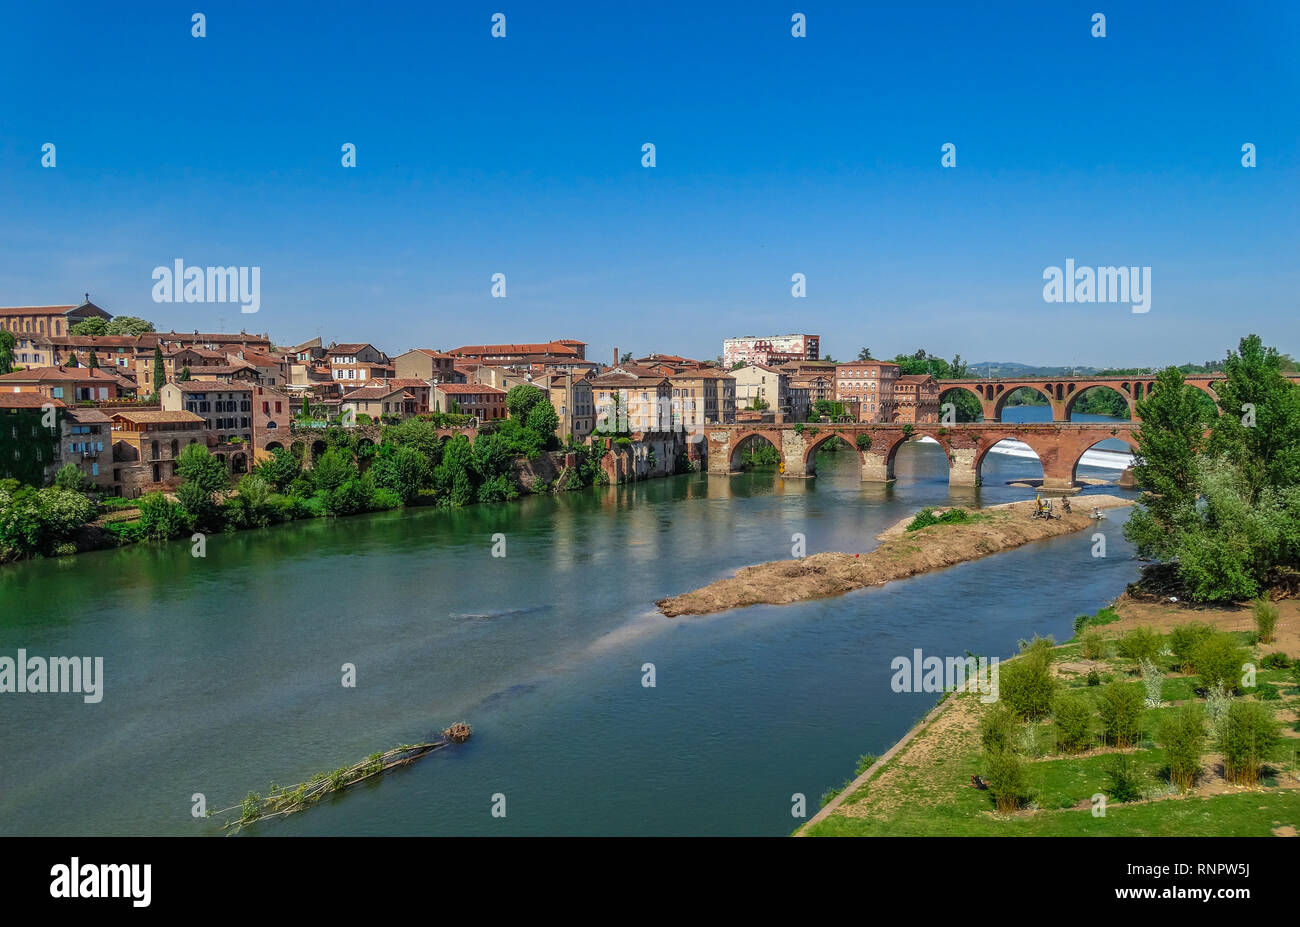 Albi medieval town, on Tarn river, with blue sky, Tarn, France Stock Photo